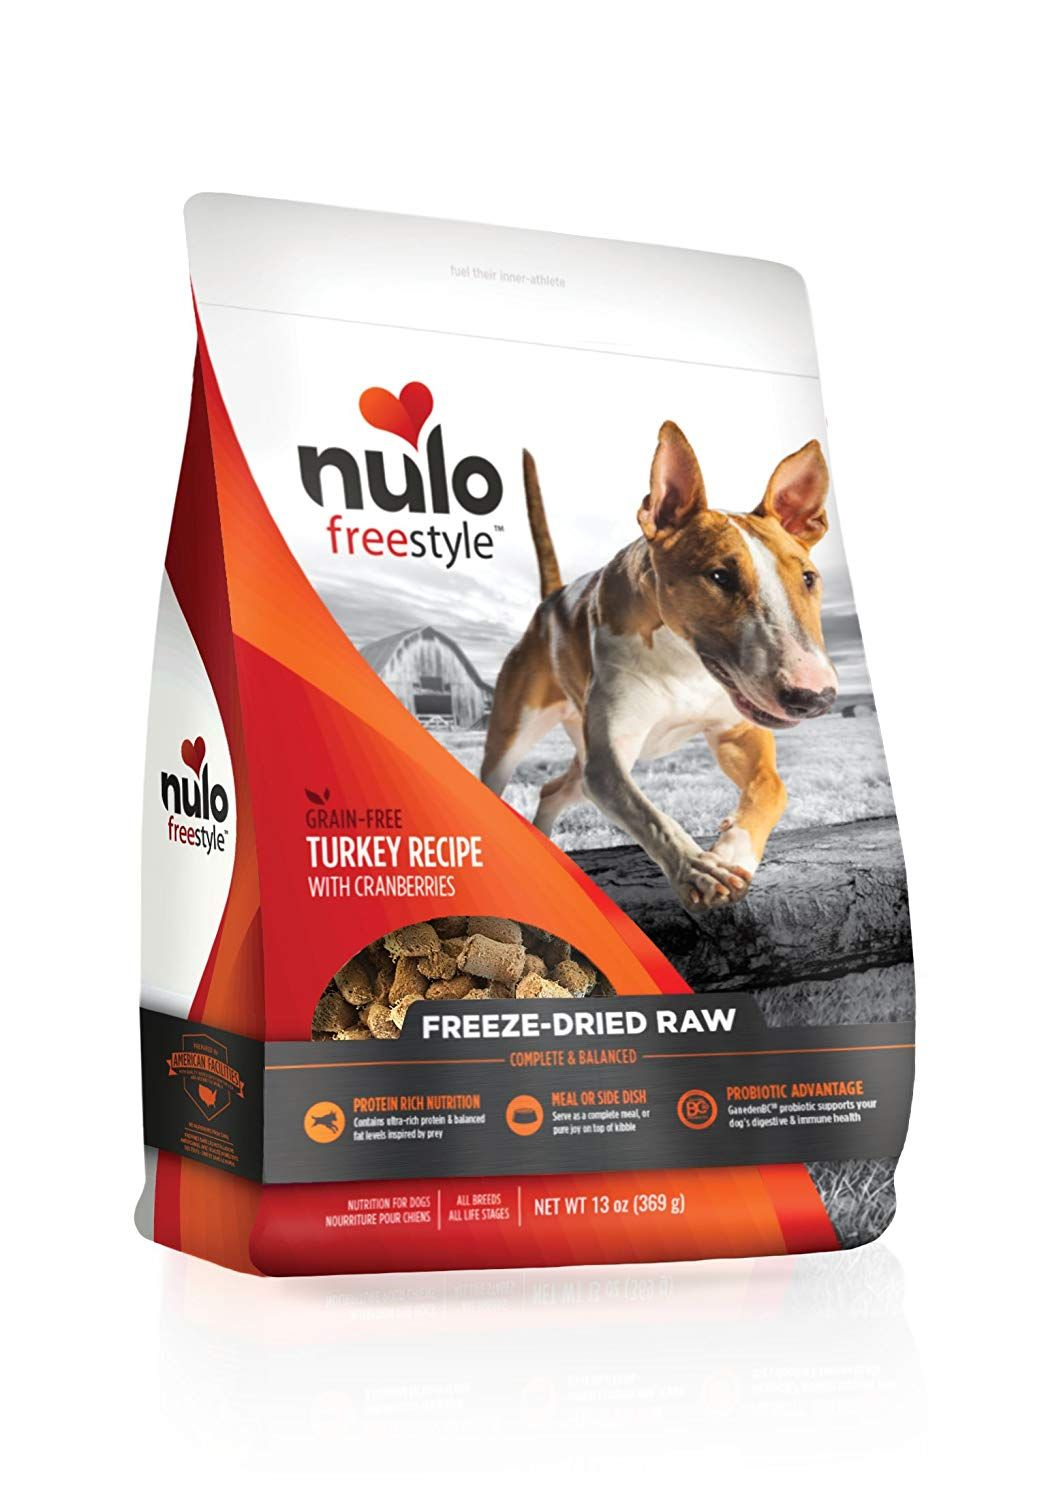 Nulo Freestyle Freeze Dried Dog Food You Can Get More Details